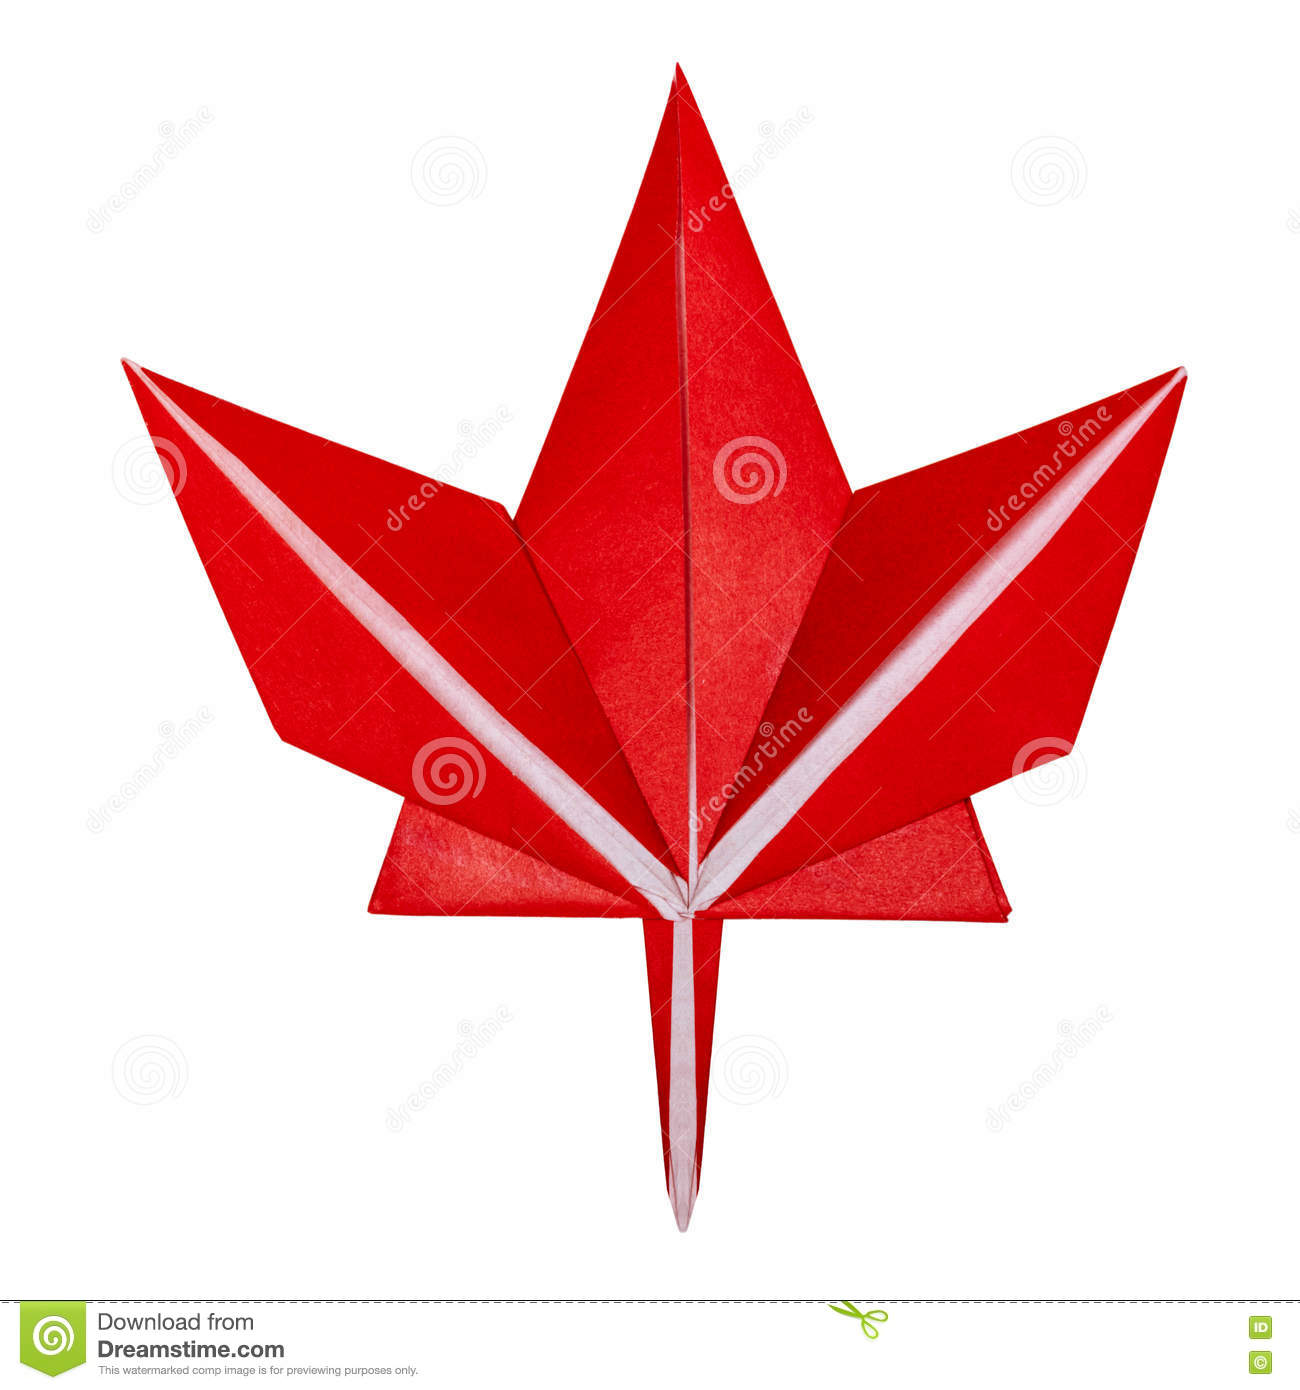 Origami Fall Red Maple Leaf Stock Image - Image of falling ... - photo#5